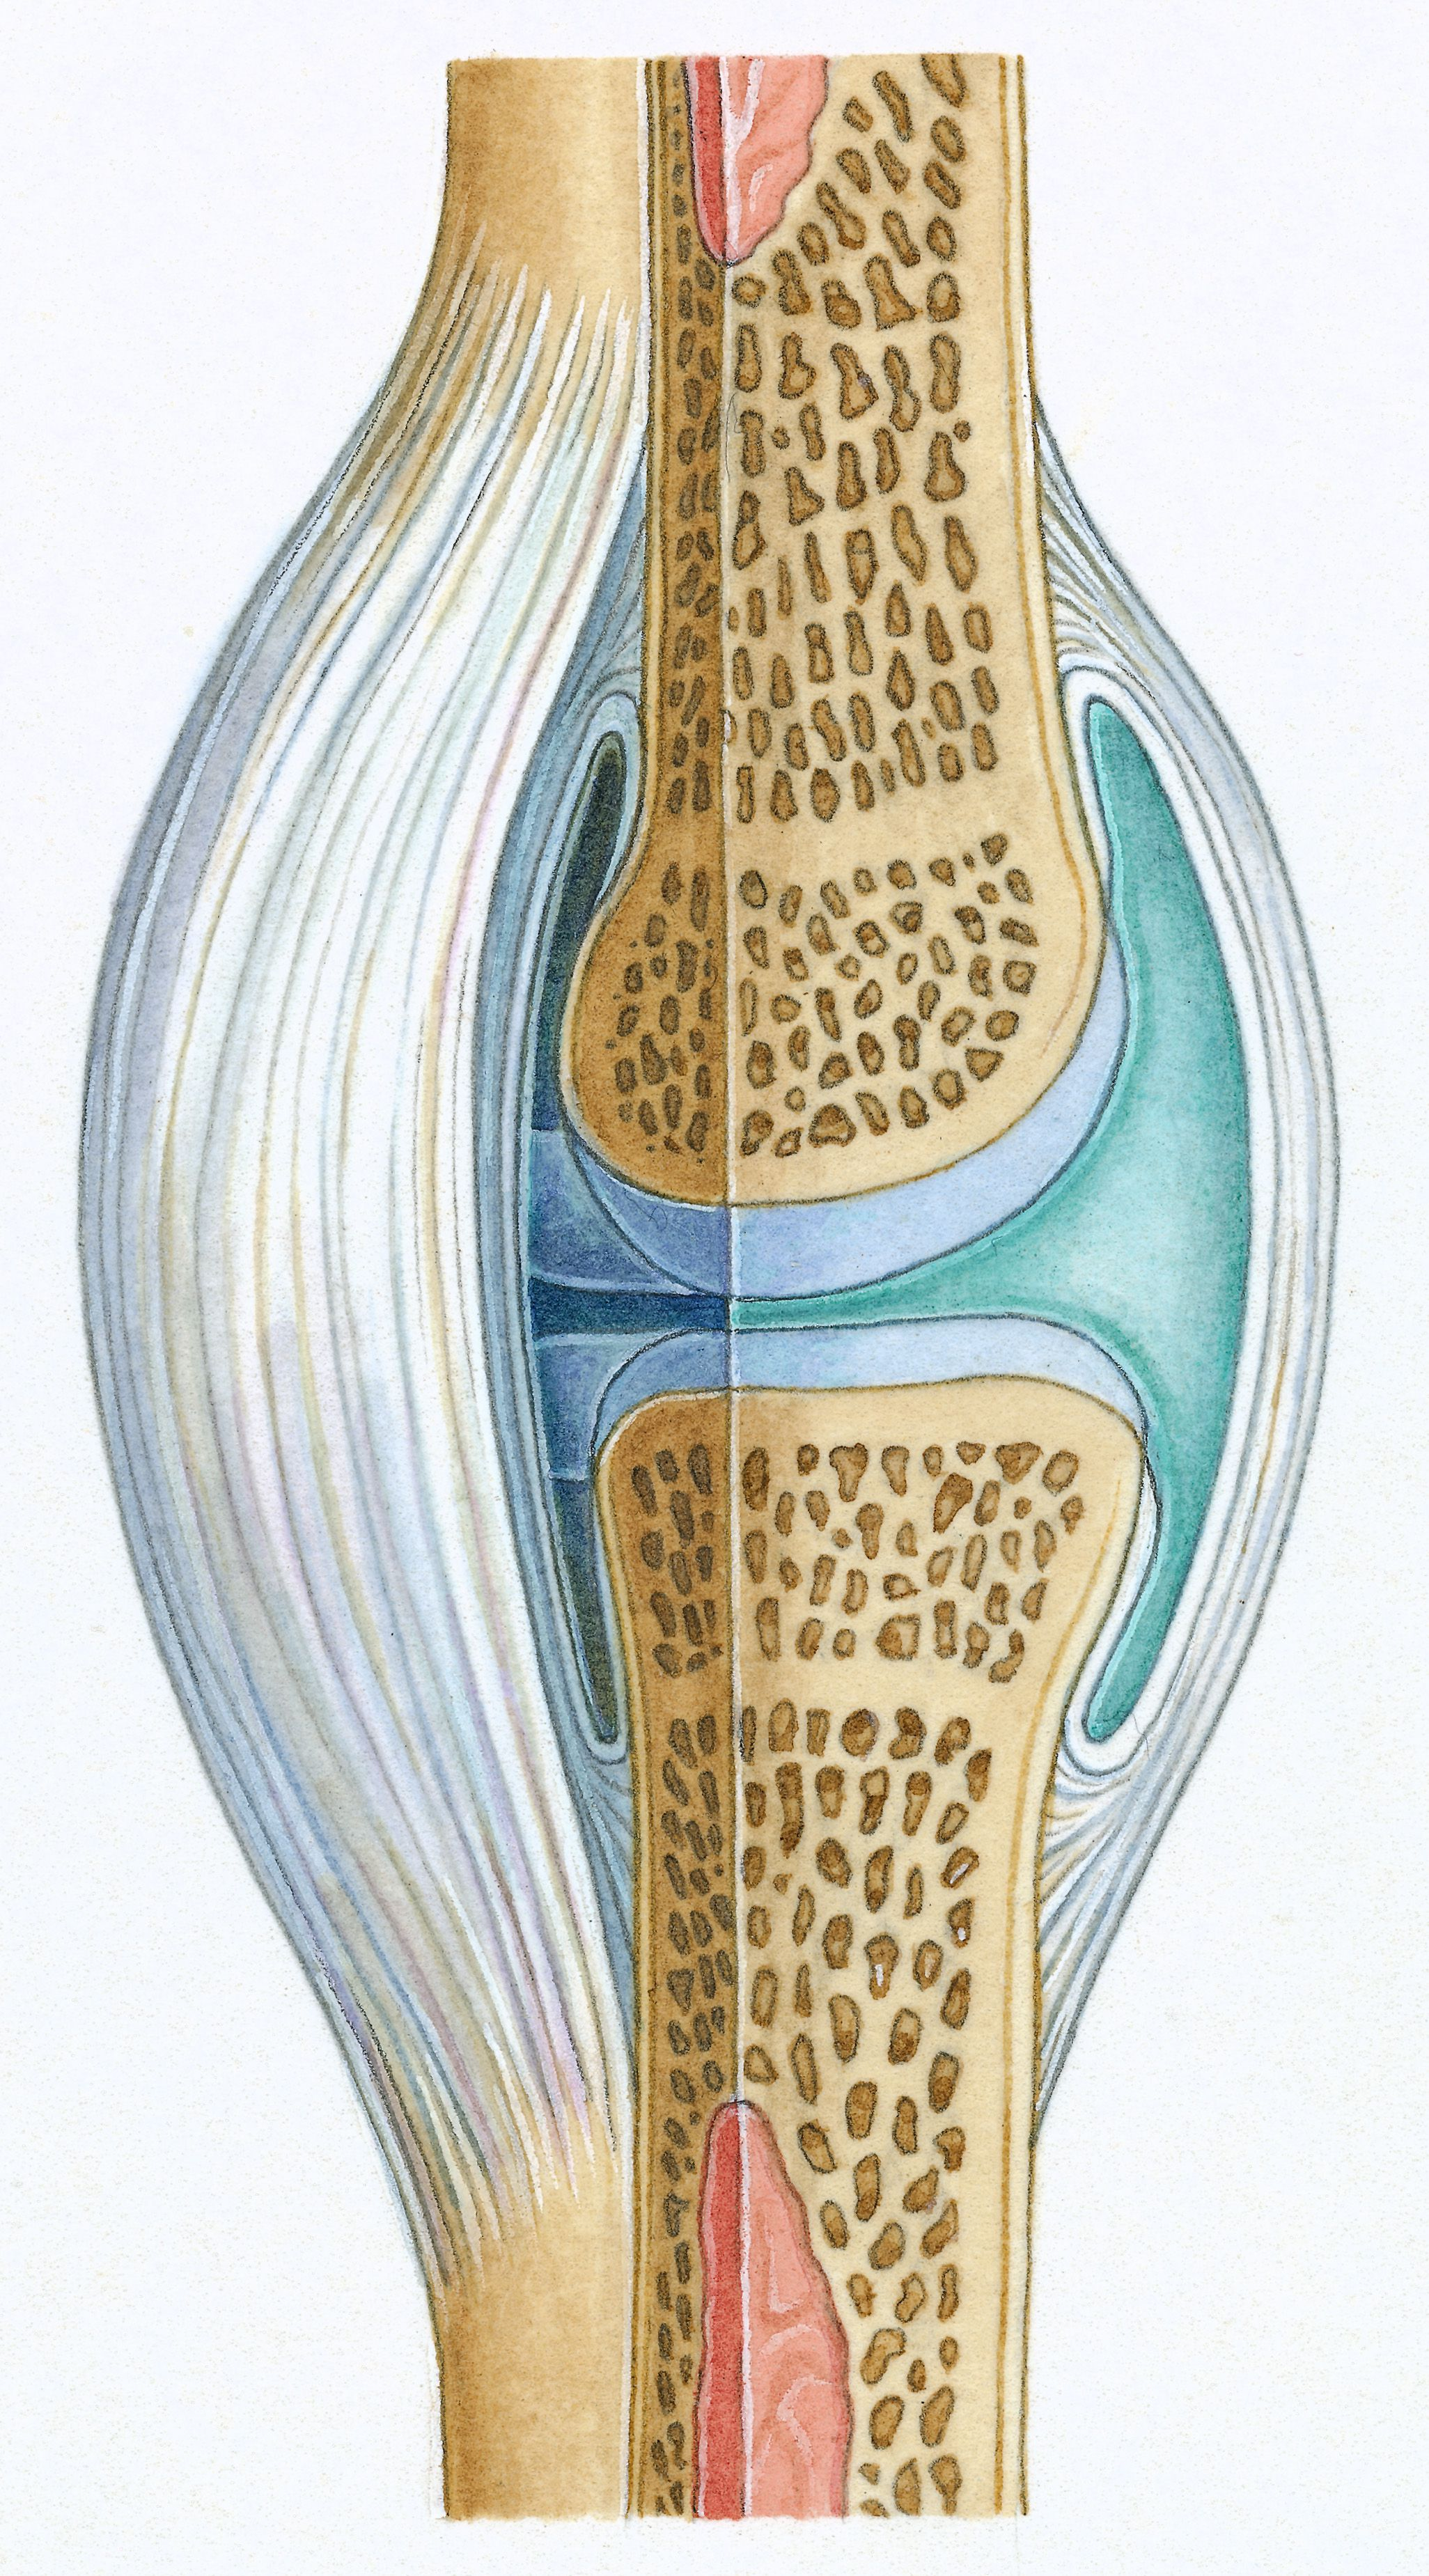 The Function Of Synovium In A Joint